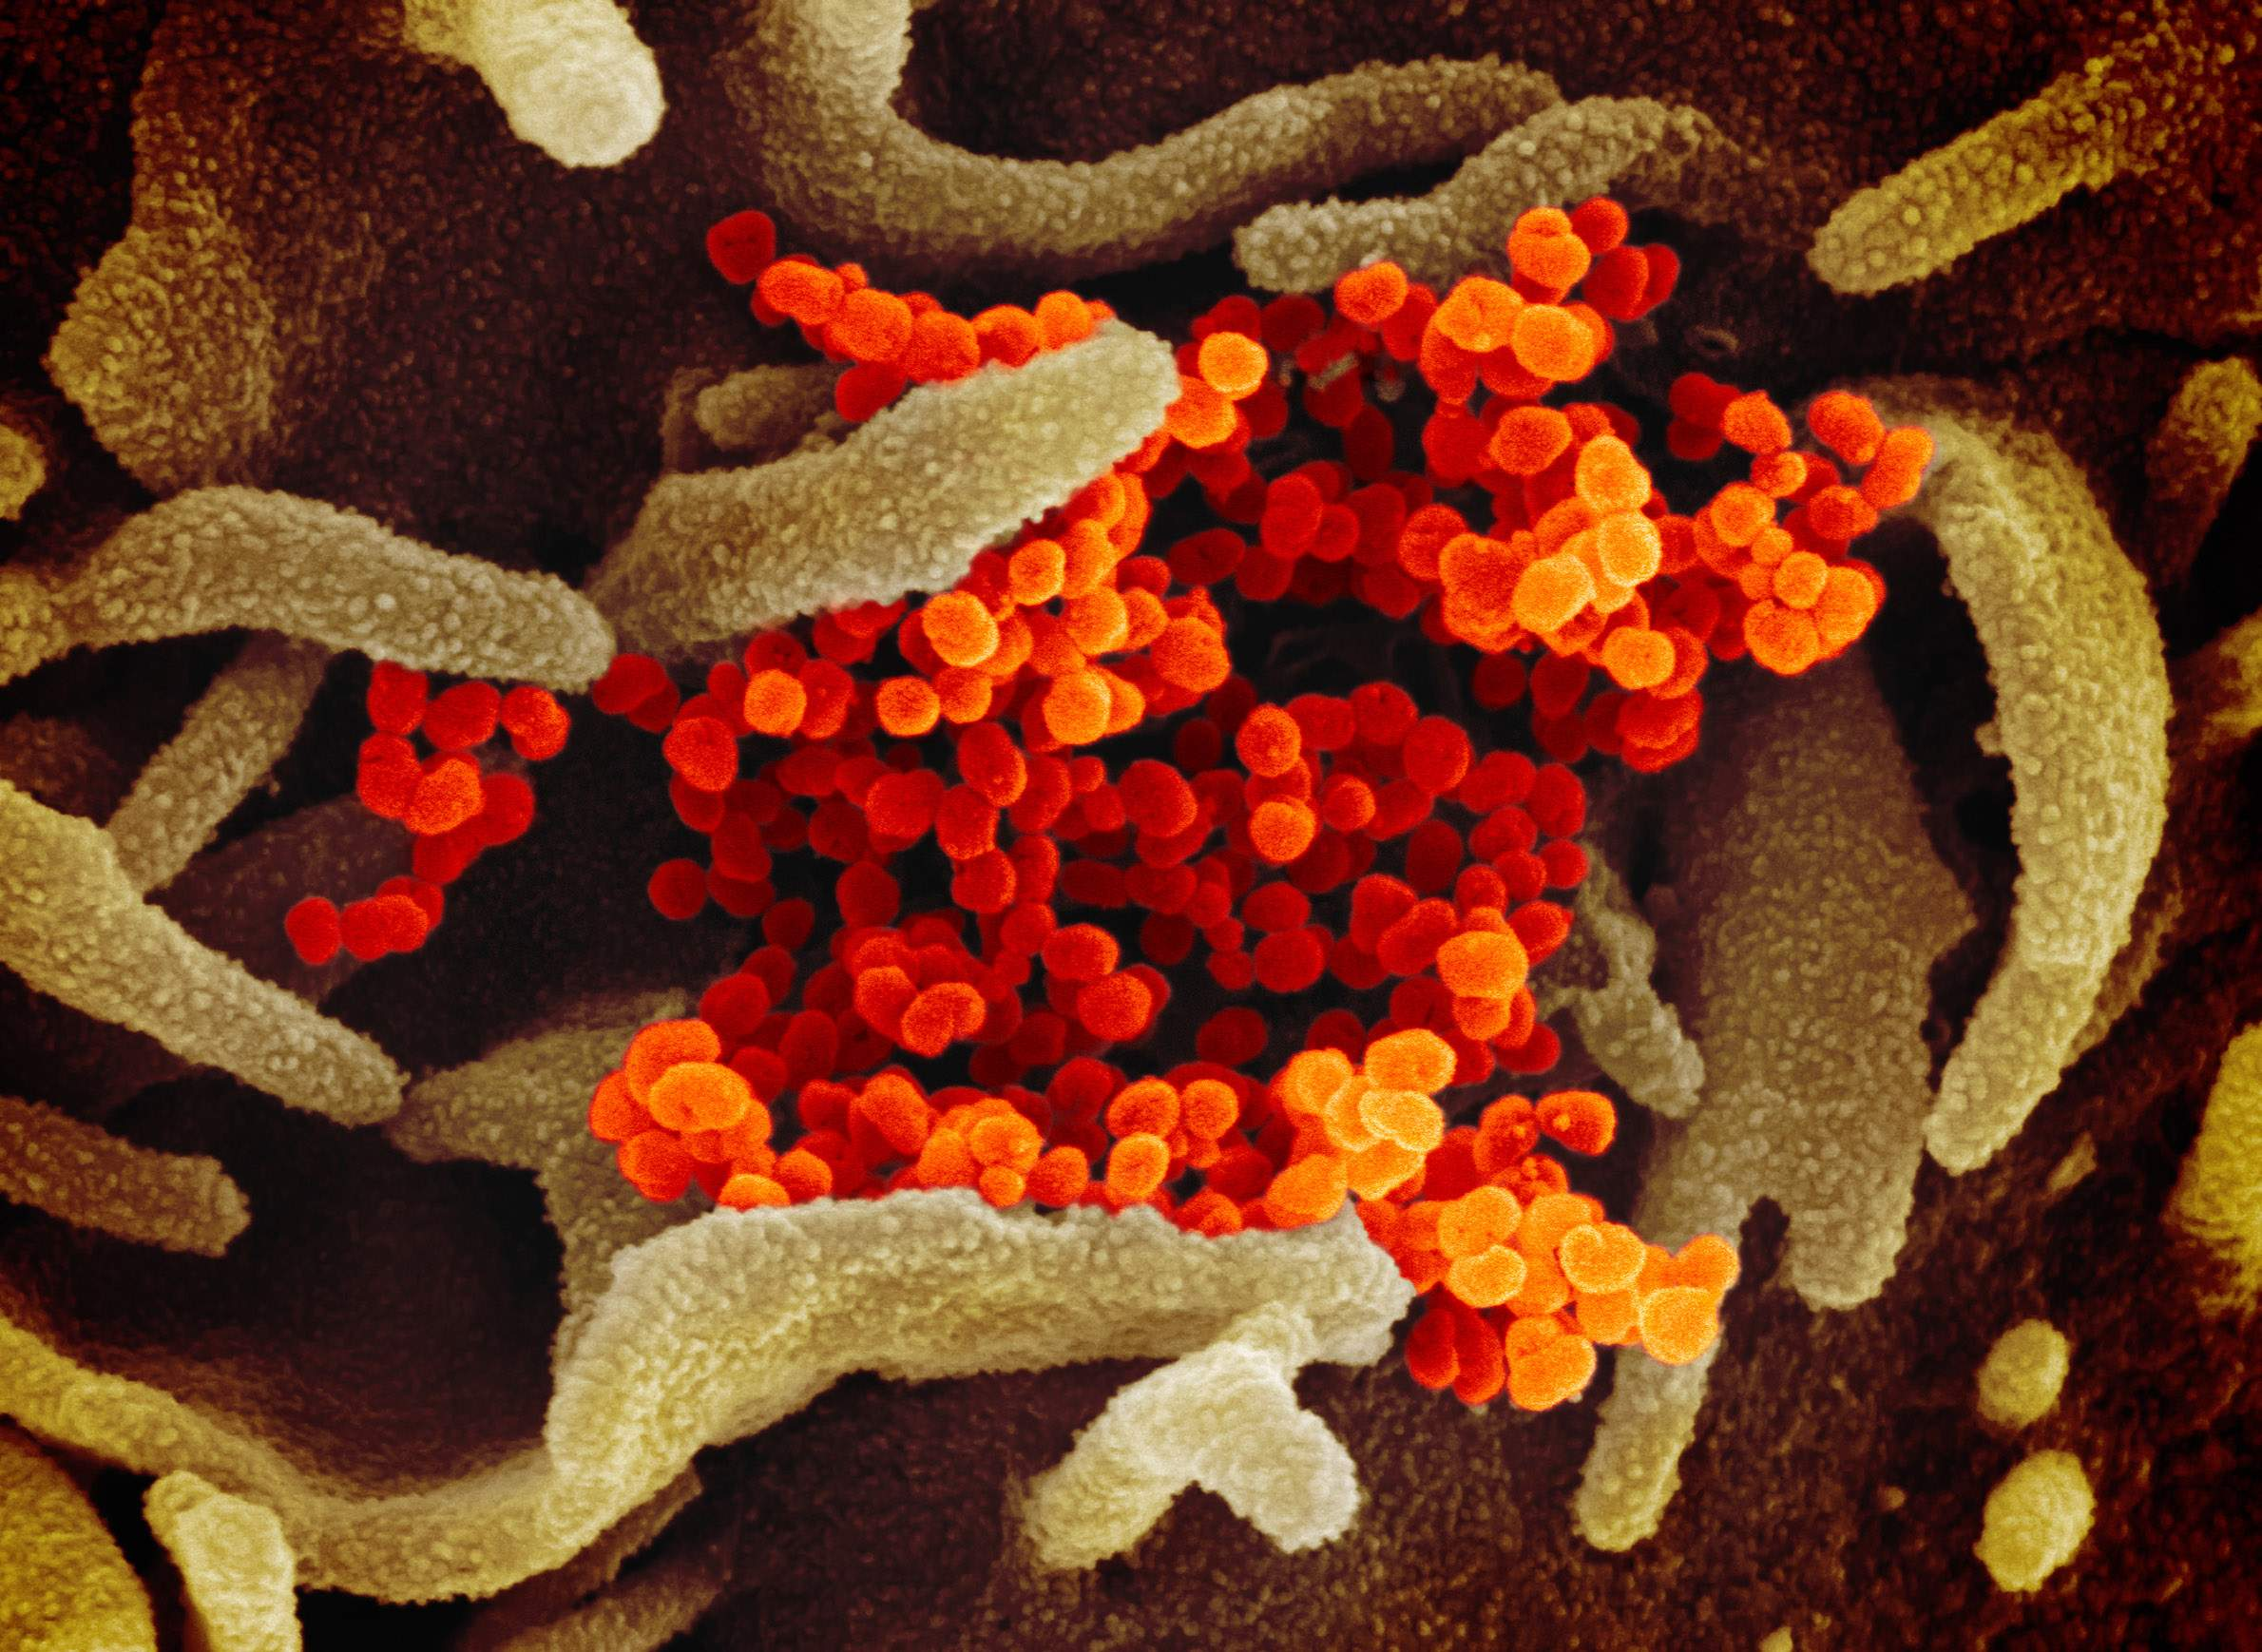 A scanning electron microscope image shows SARS-CoV-2 viruses (in orange) emerging from the surface of cells cultured in the lab. SARS-CoV-2, also known as 2019-nCoV, is the virus that causes COVID-19. The virus shown was isolated from a patient in the U.S. Image from the National Institute of Allergy and Infectious Diseases/Rocky Mountain Laboratories (CC BY 2.0).